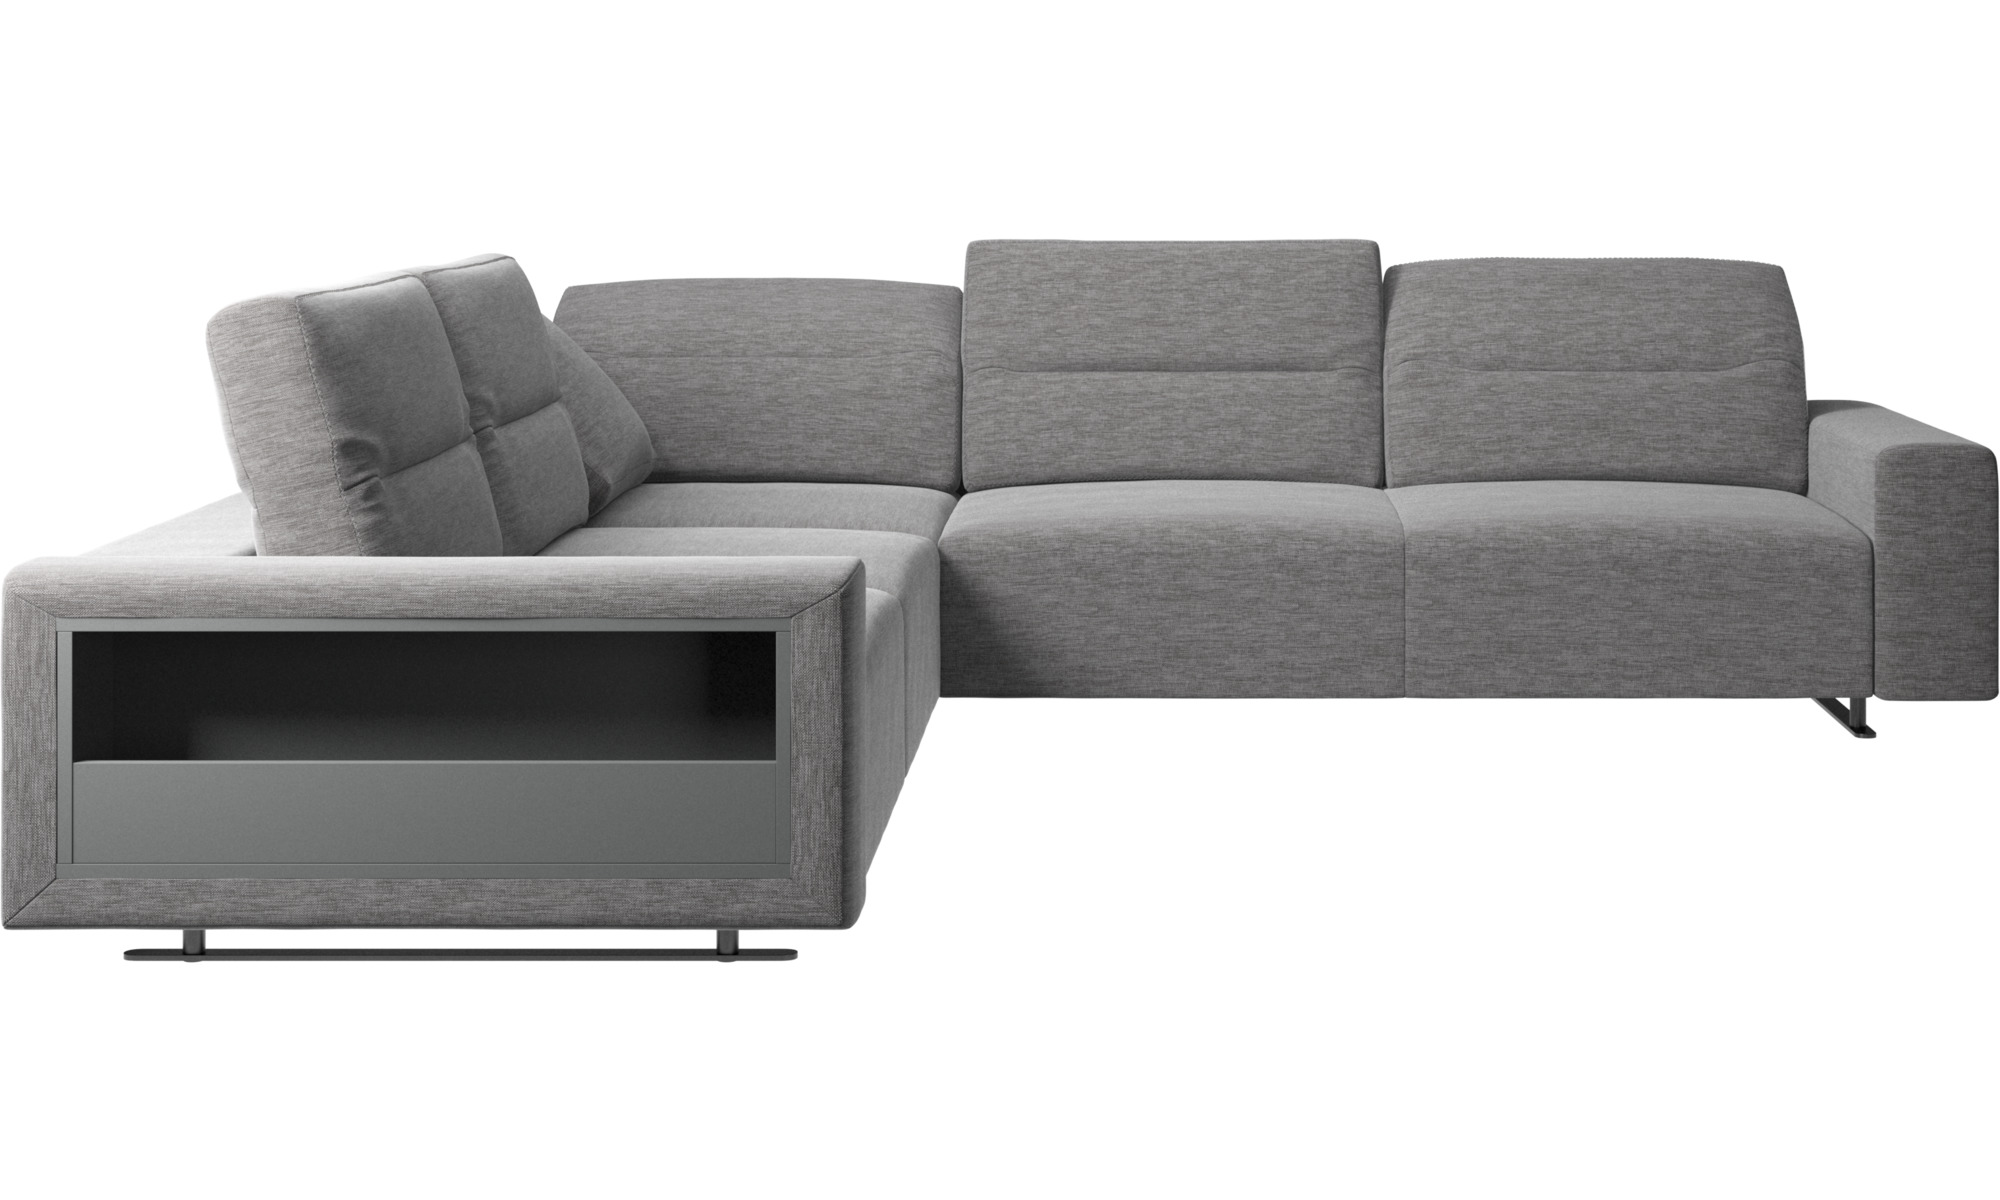 sofa hampton ecksofa mit verstellbarer r ckenlehne und stauraum auf der linken seite boconcept. Black Bedroom Furniture Sets. Home Design Ideas